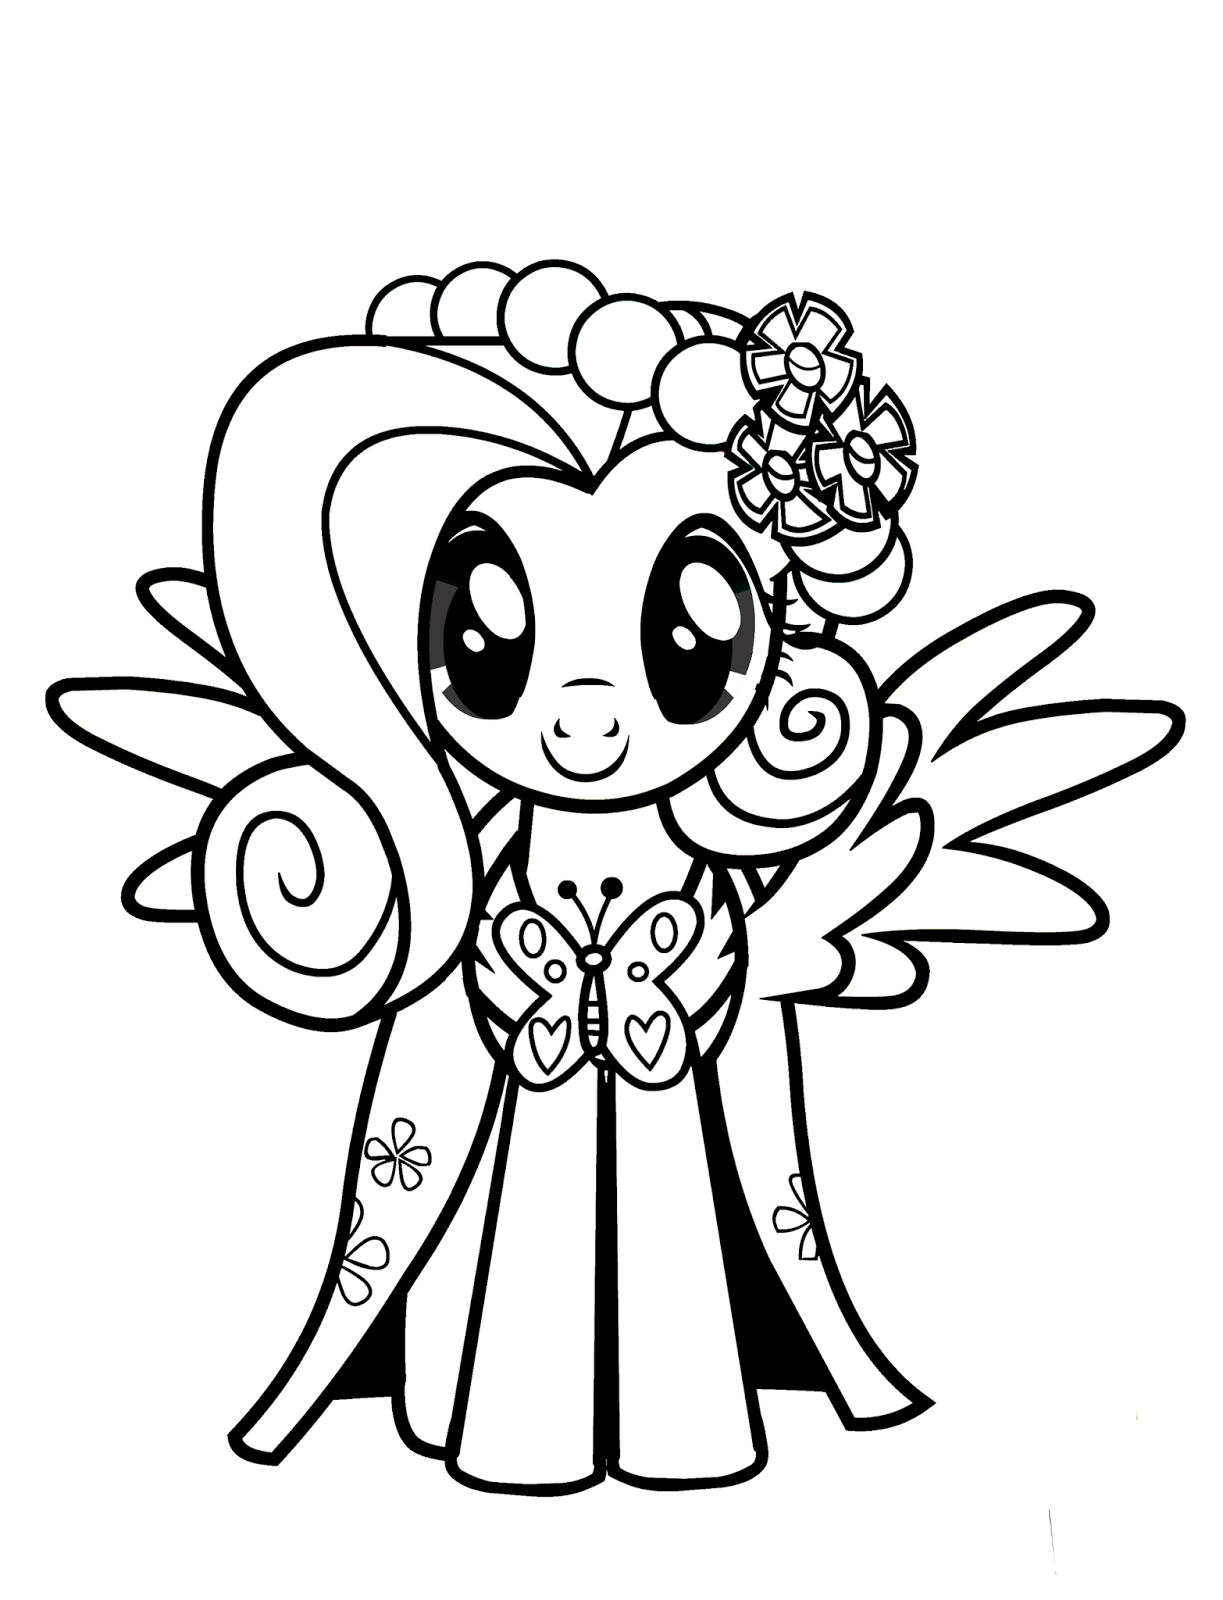 my little pony pages to color my little pony coloring pages team colors pony color my little pages to